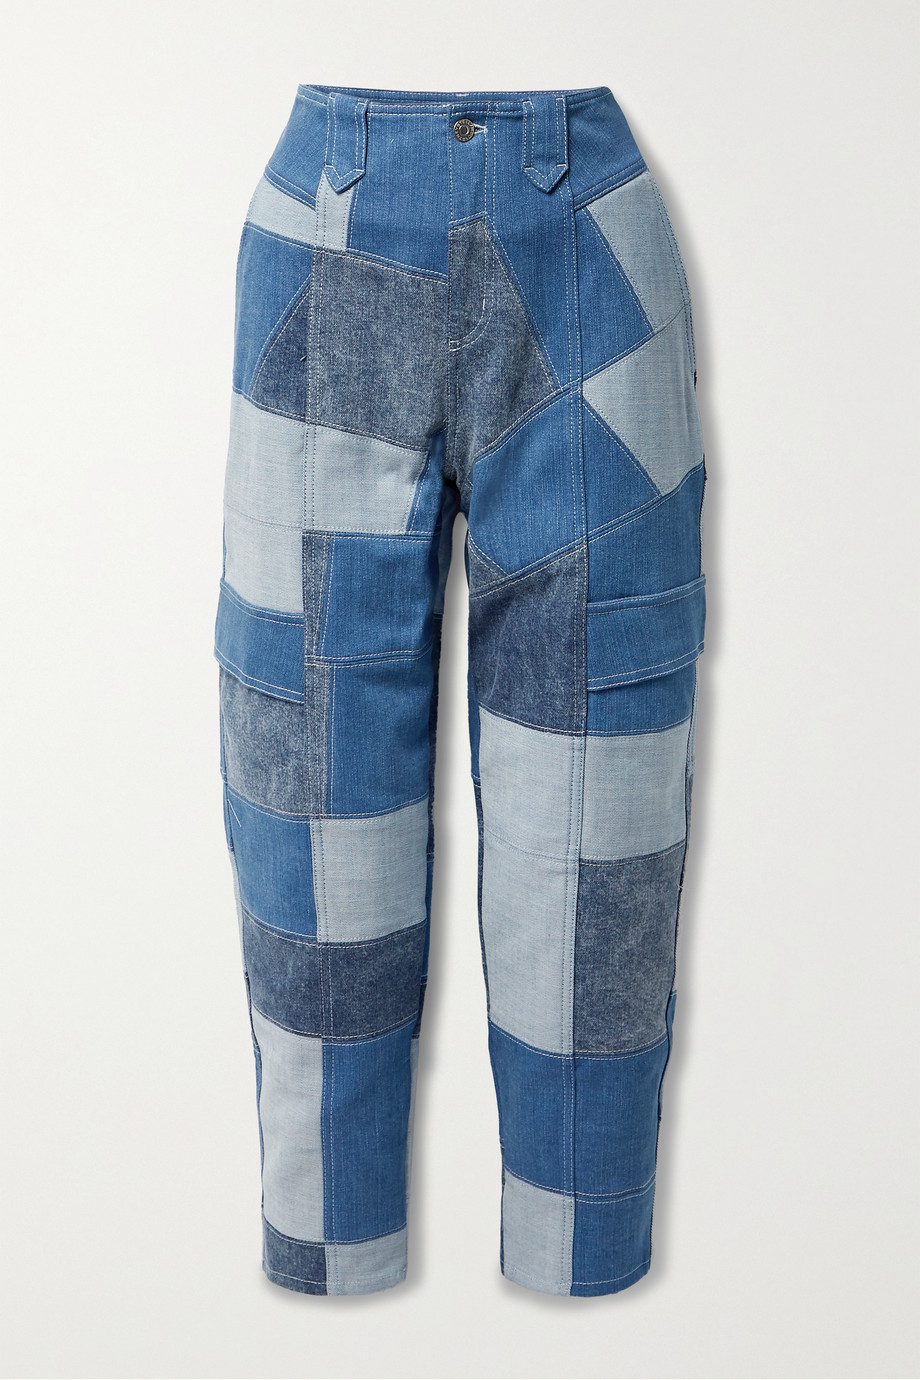 Stella McCartney + NET SUSTAIN patchwork organic tapered jeans